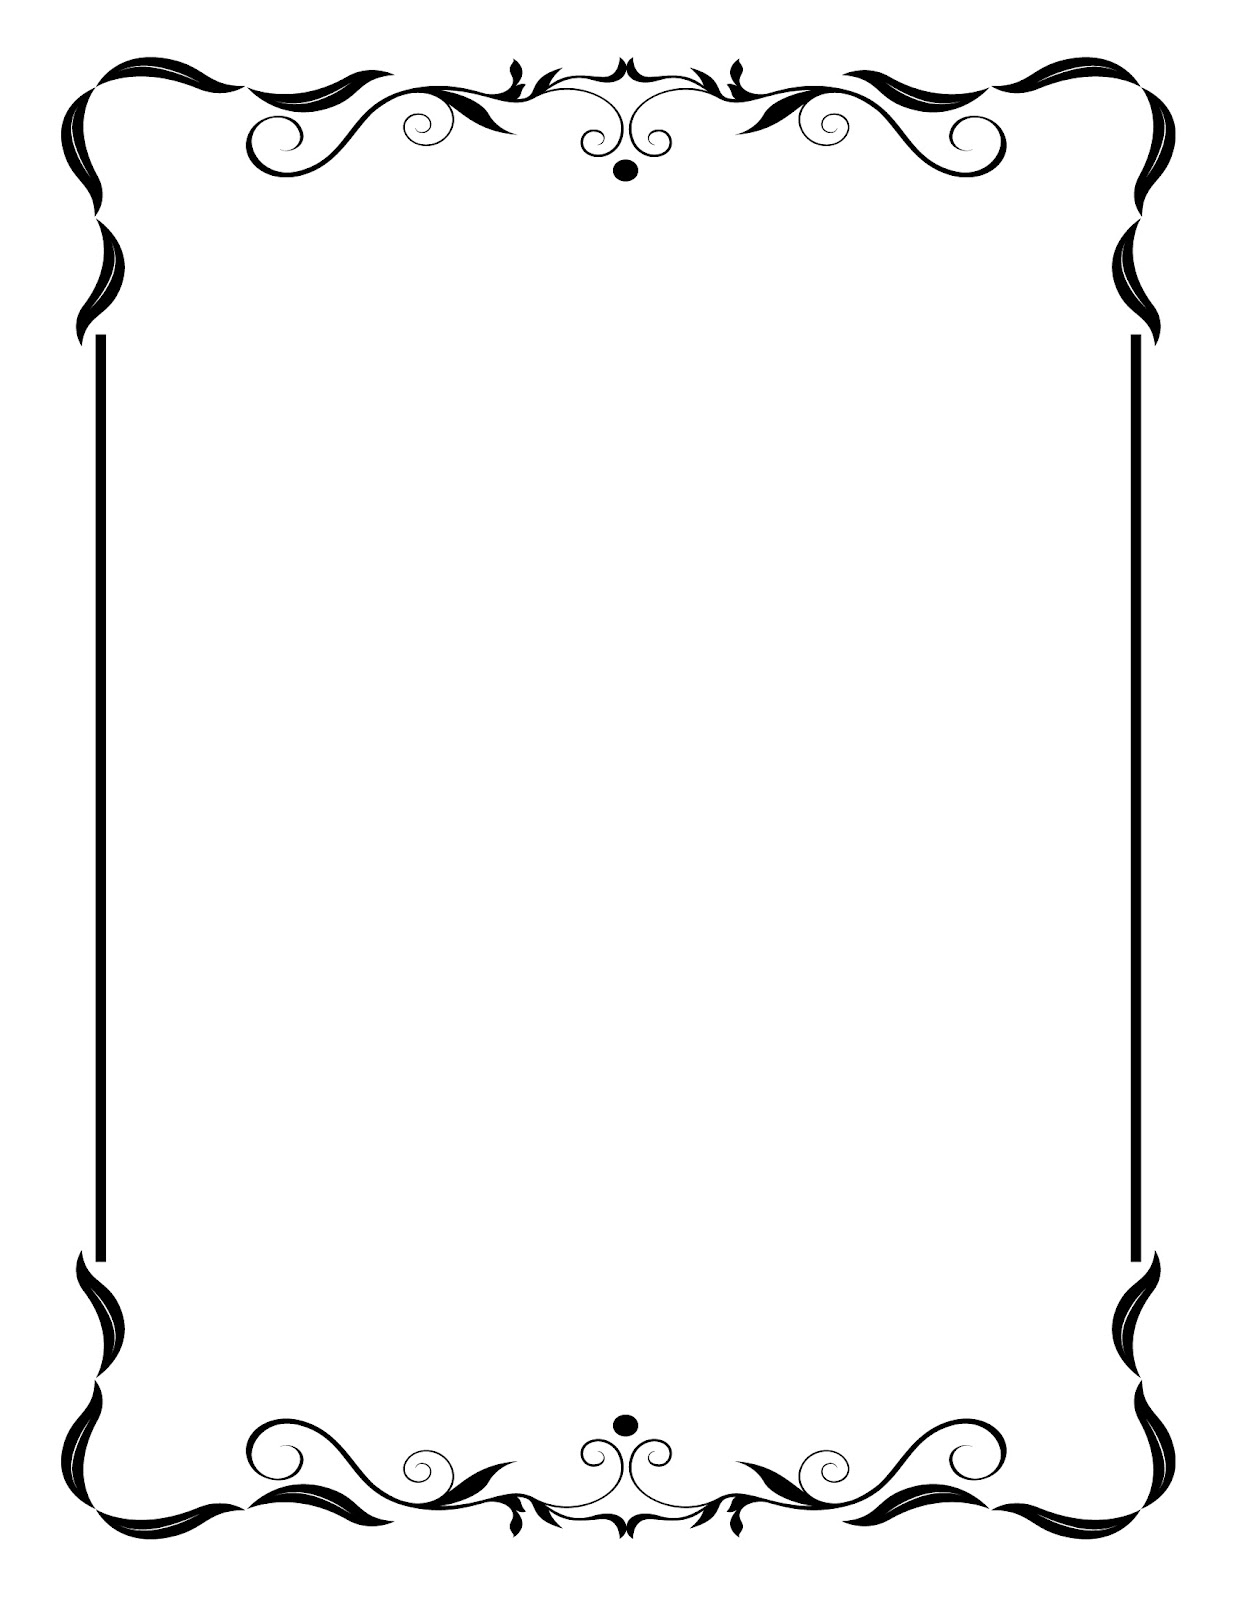 Simple clipart picture frame #6